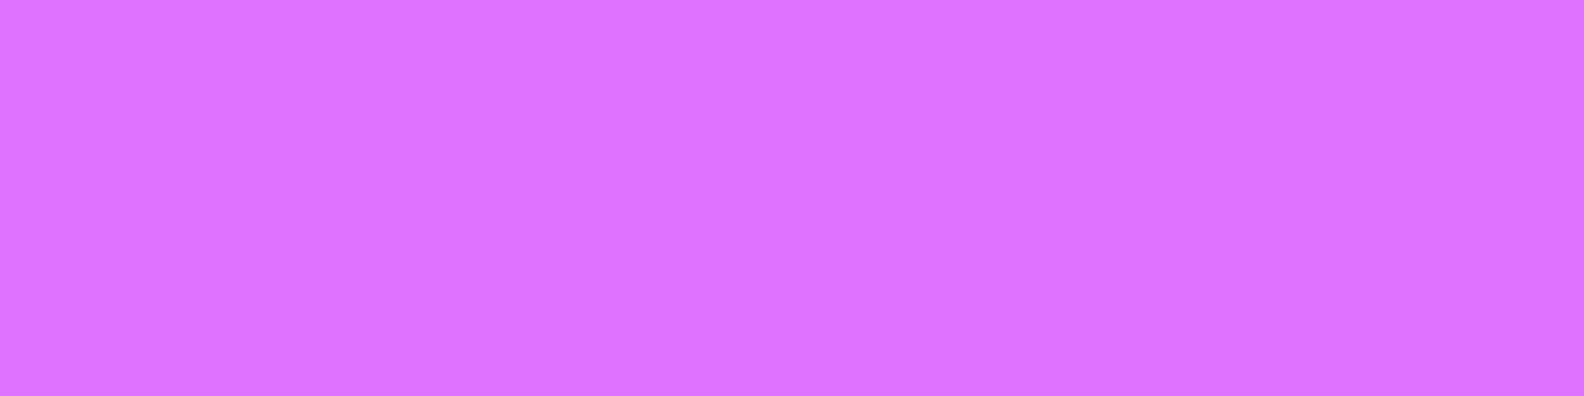 1584x396 Heliotrope Solid Color Background